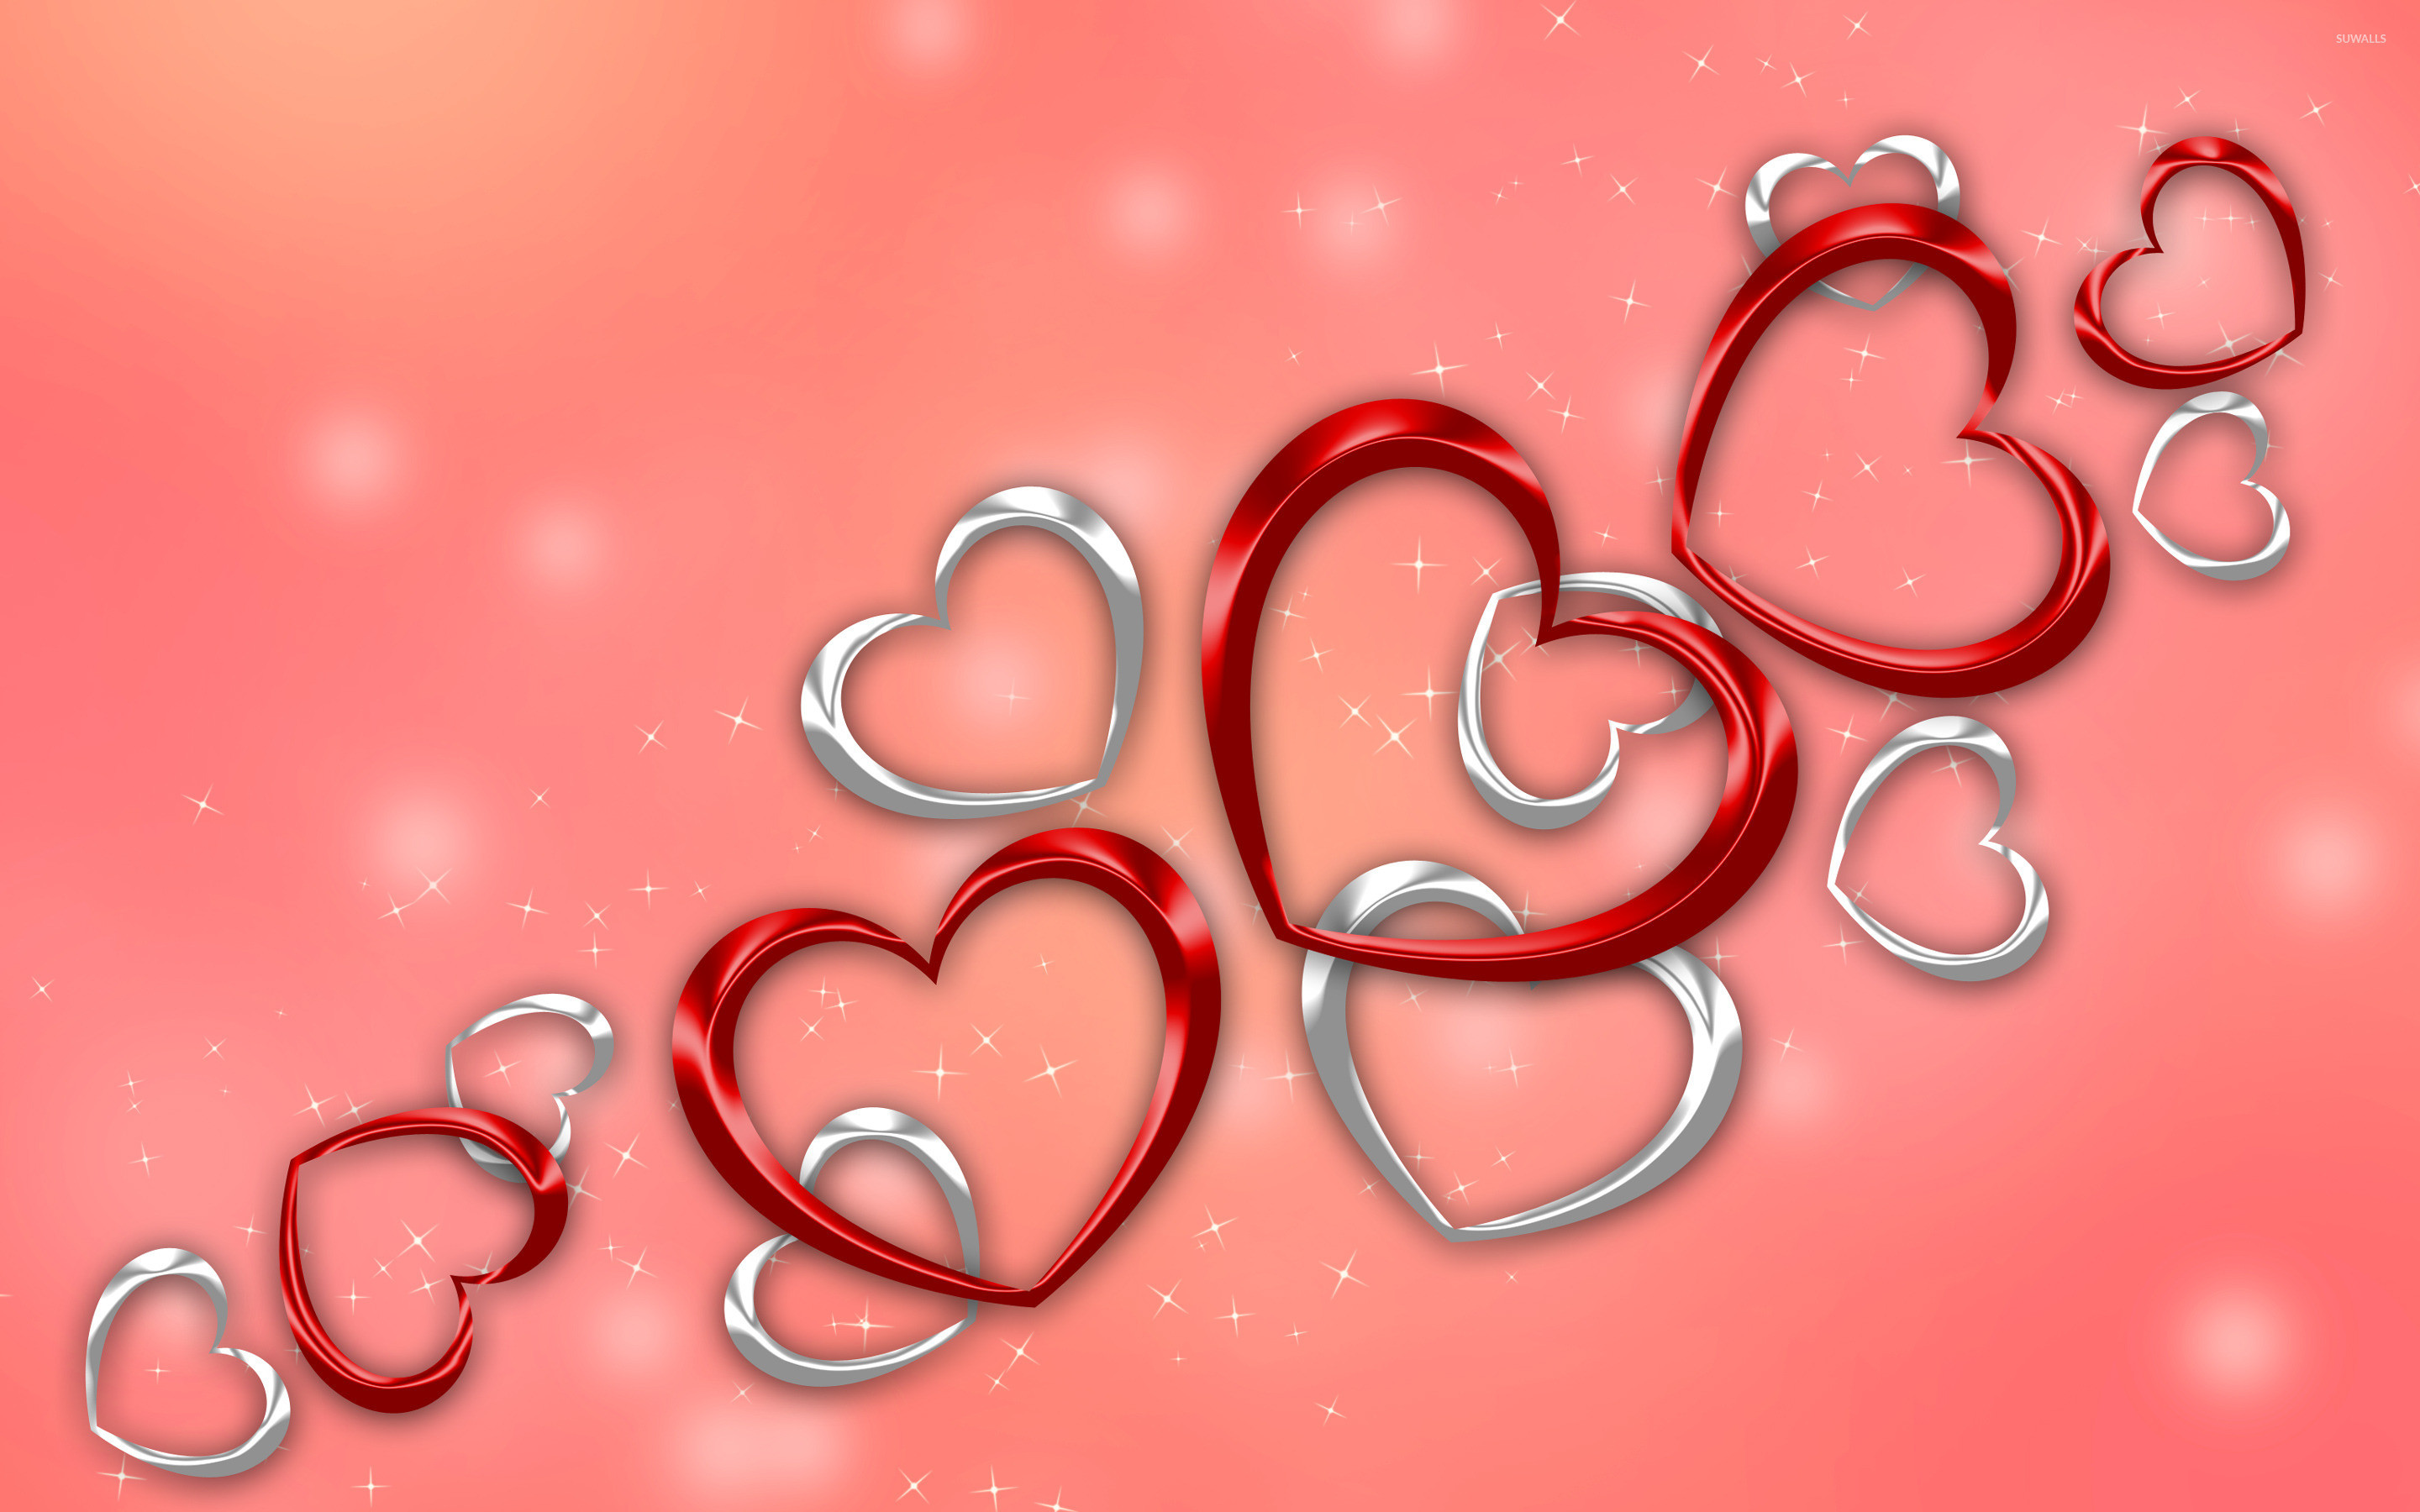 Red hearts wallpaper 60 images - Heart to heart wallpaper ...